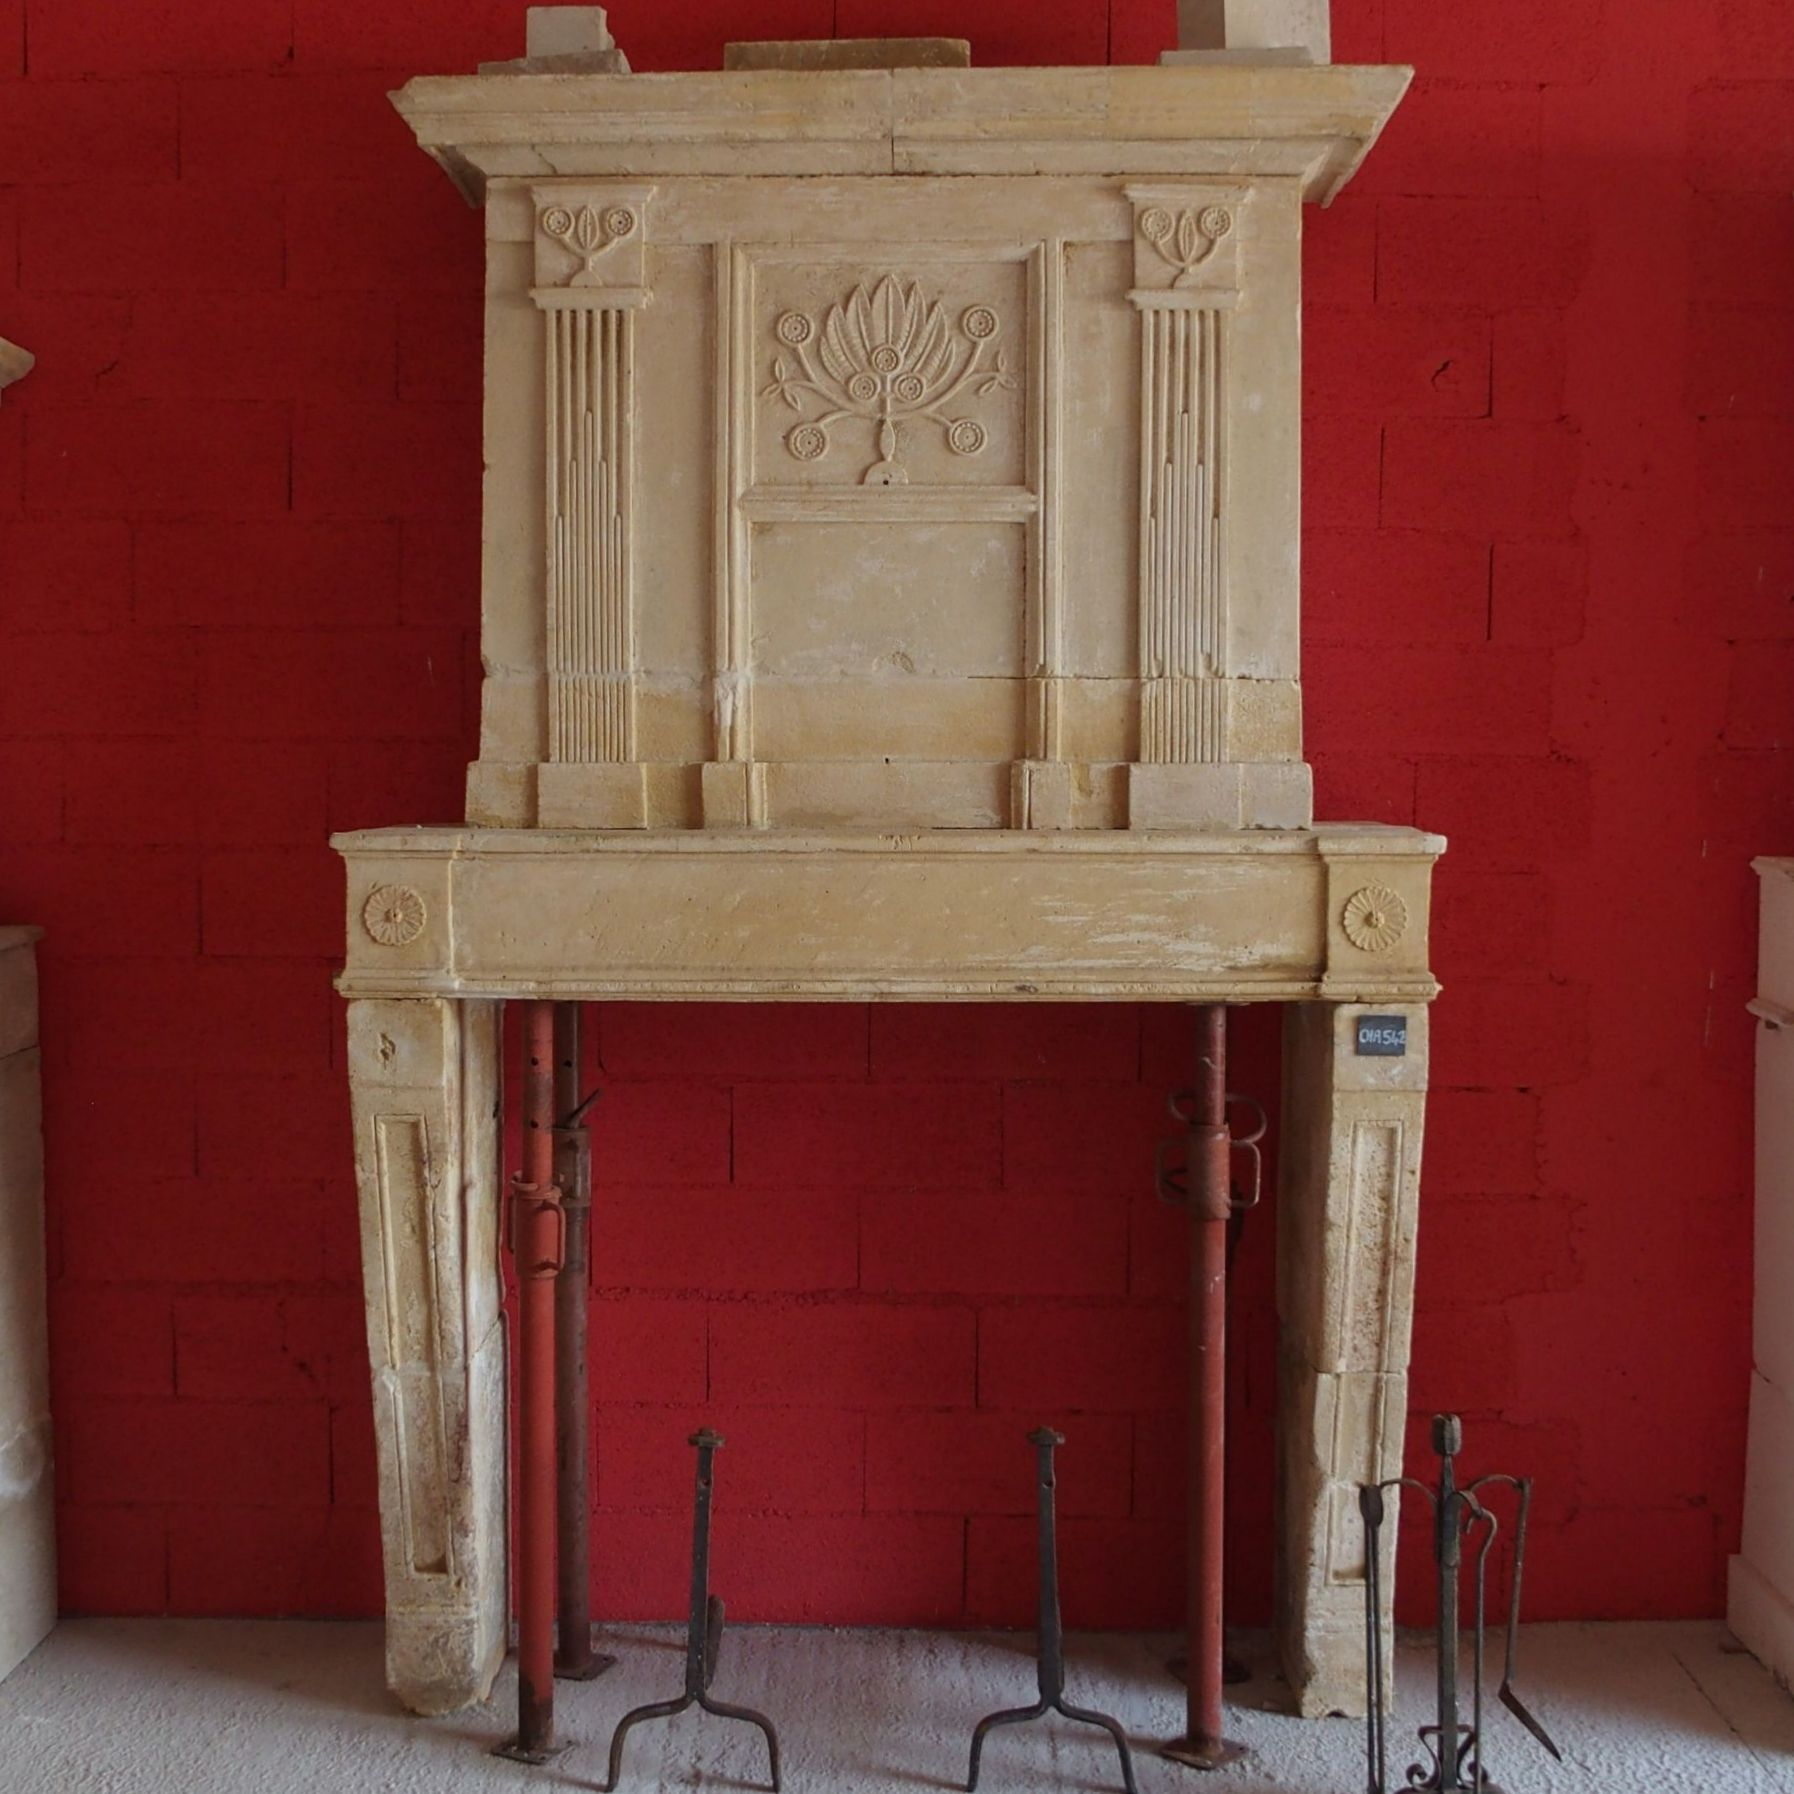 Louis XVI fireplace - a fireplace with overmantl made of Charentes natural stone.